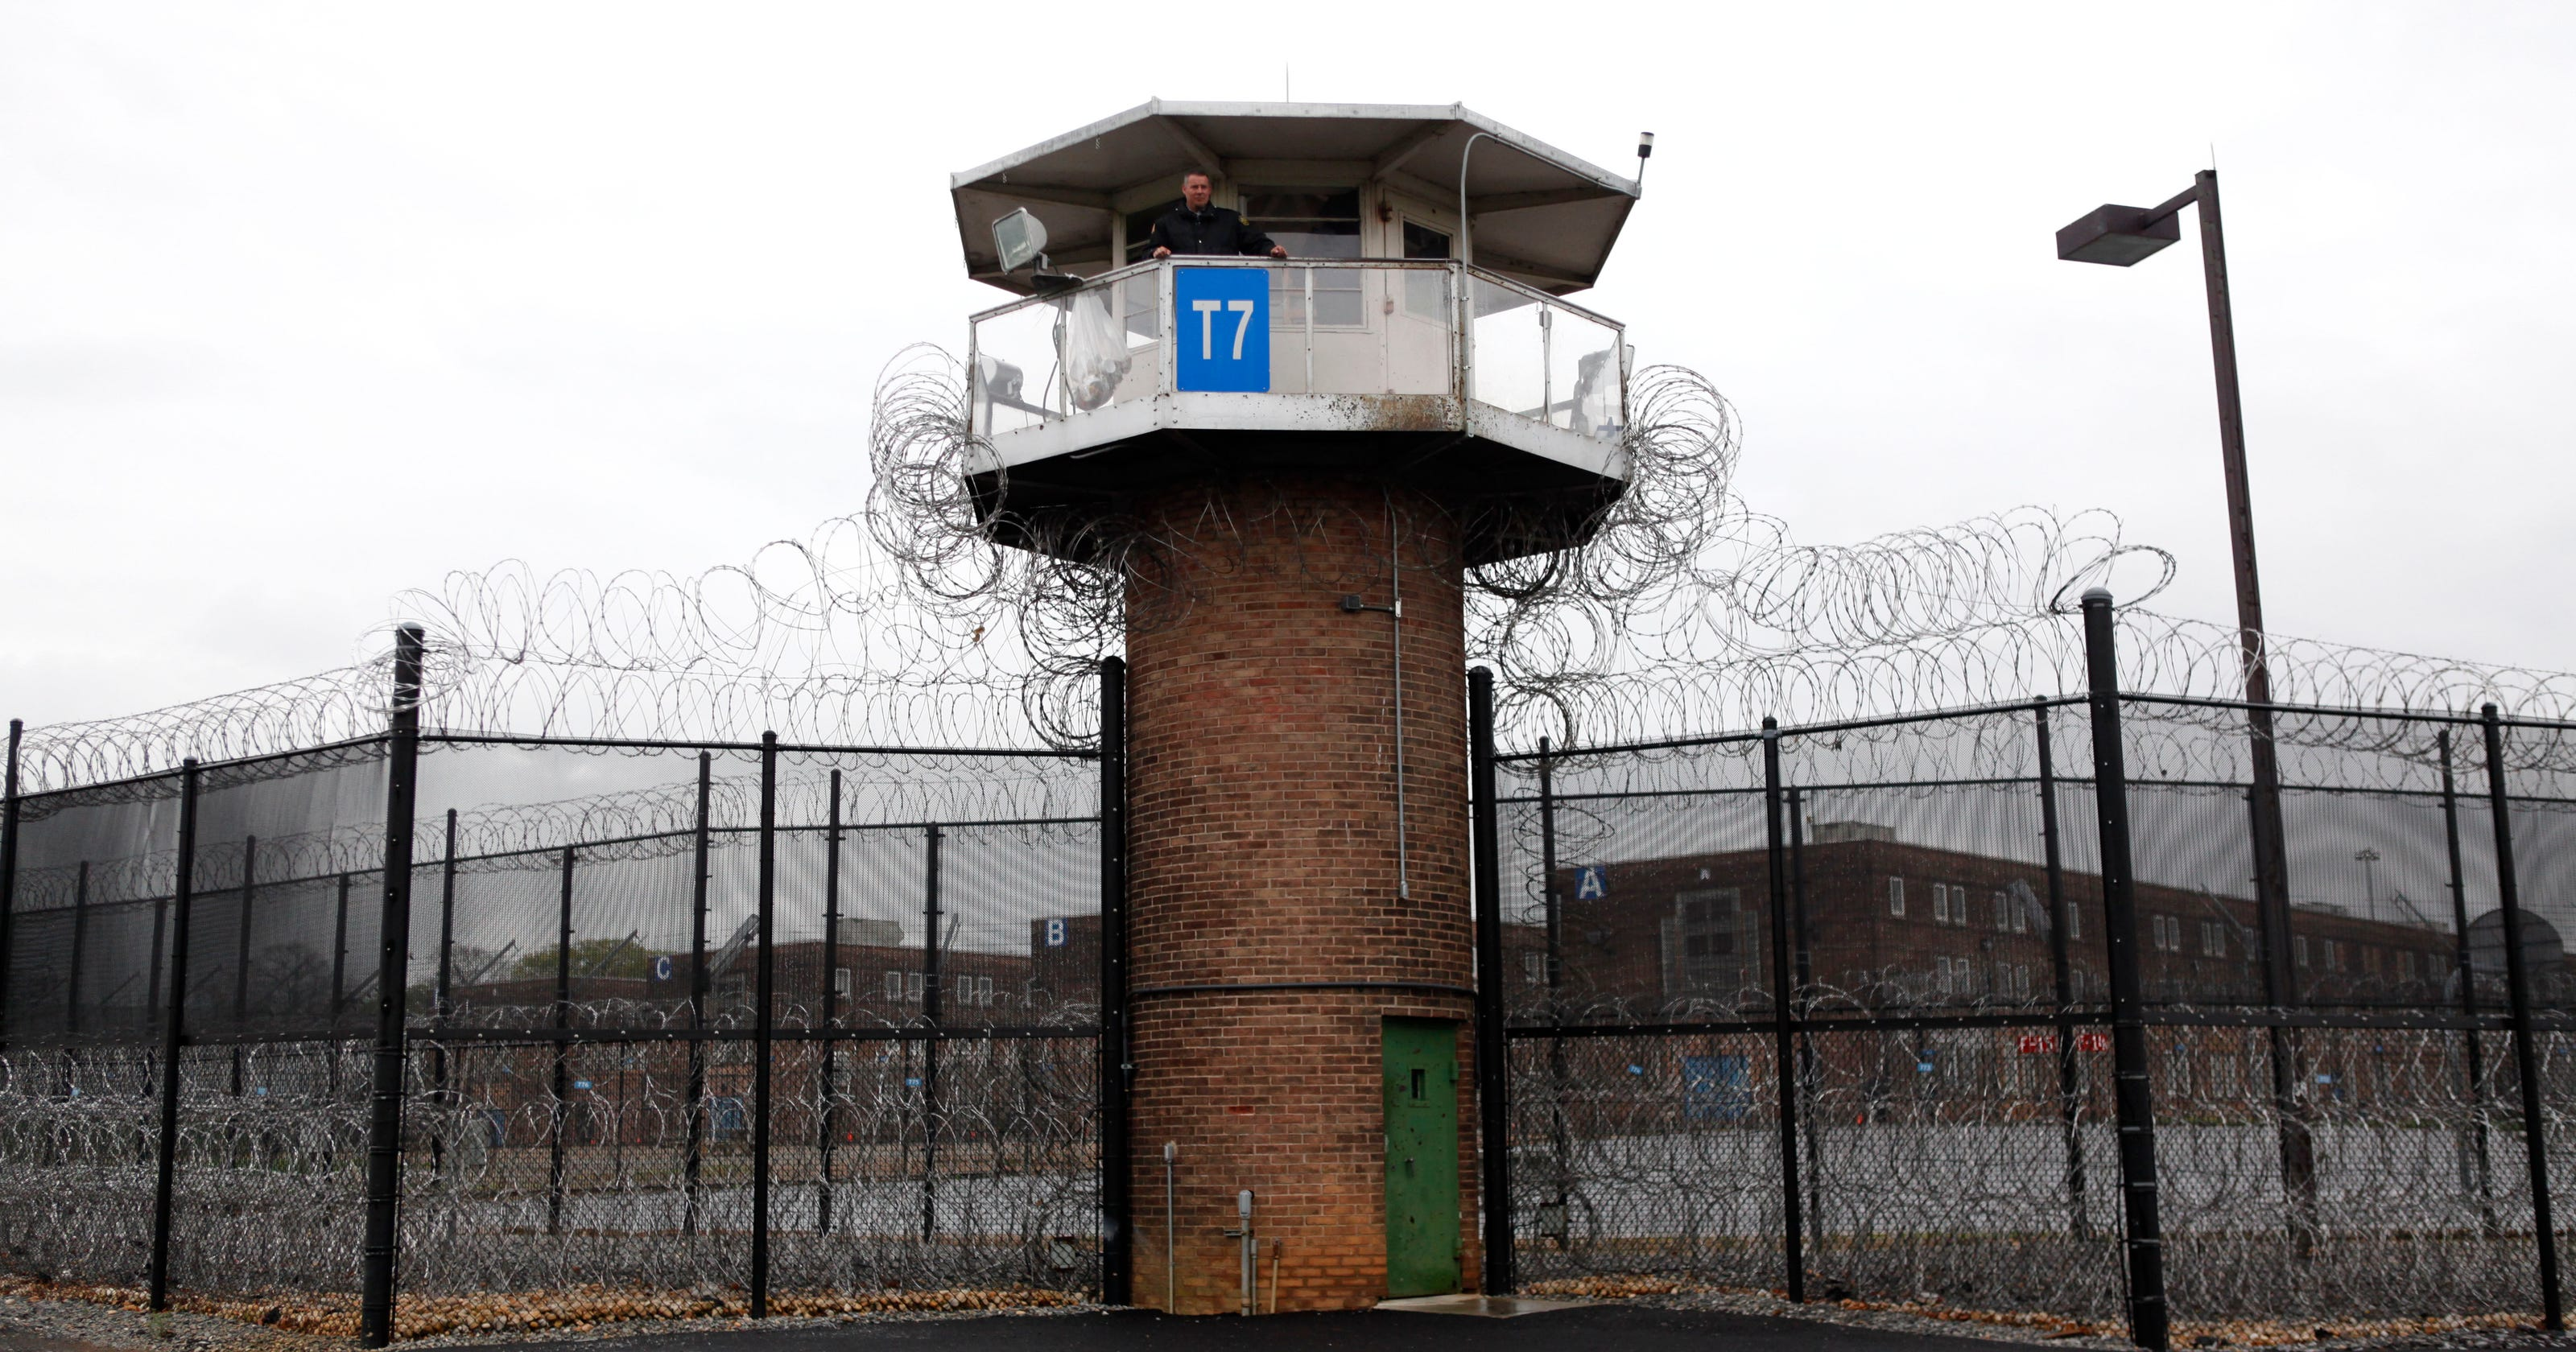 How much does it cost to care for inmates in Pennsylvania?